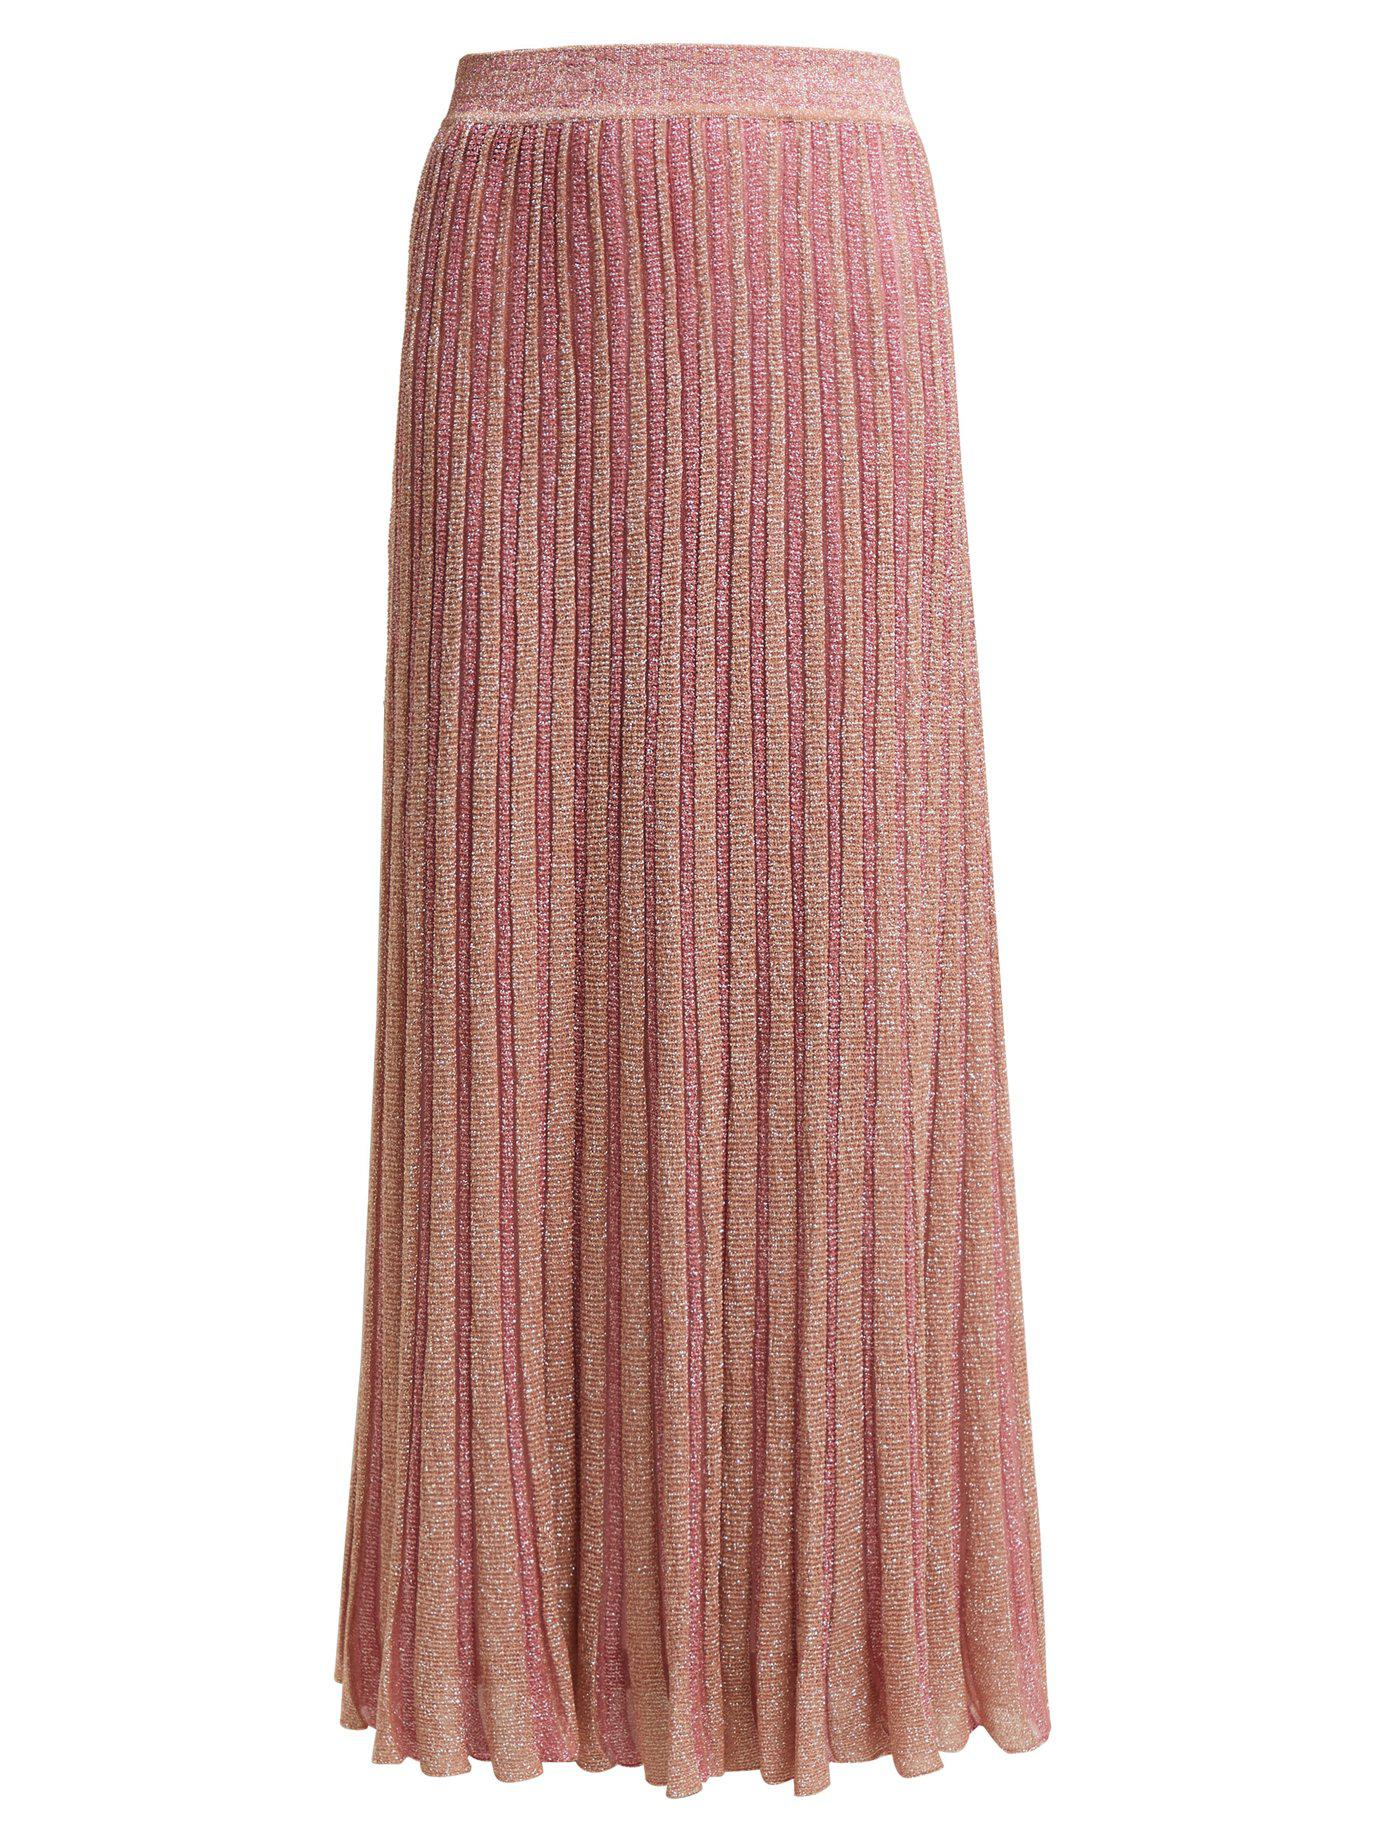 a64e58c8ff19 Lyst - Missoni Ribbed Knit Lamé Skirt in Pink - Save 35%